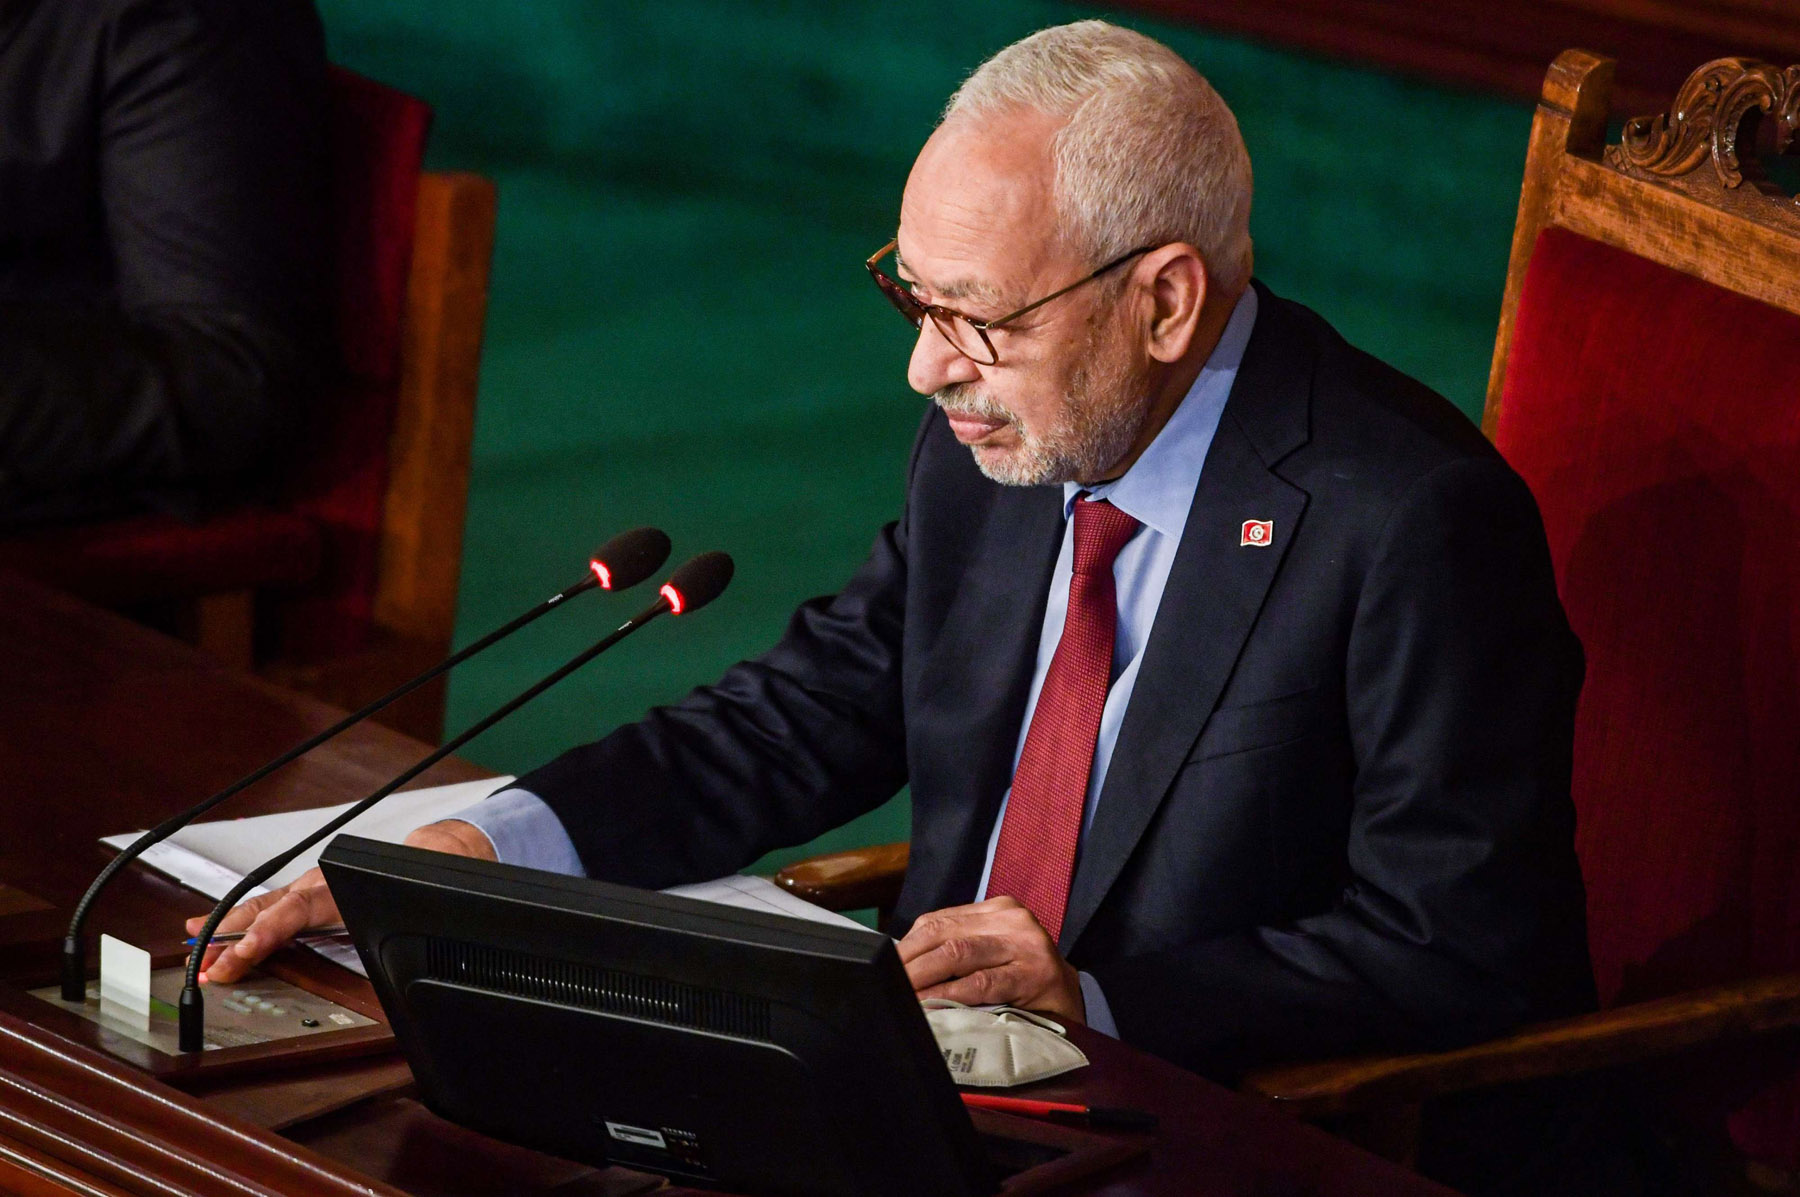 Tunisian Parliament Speaker Rached Ghannouchi attends the presentation of government ministers put forward by Prime Minister Hichem Mechichi in the capital Tunis on January 26, 2021. (AFP)